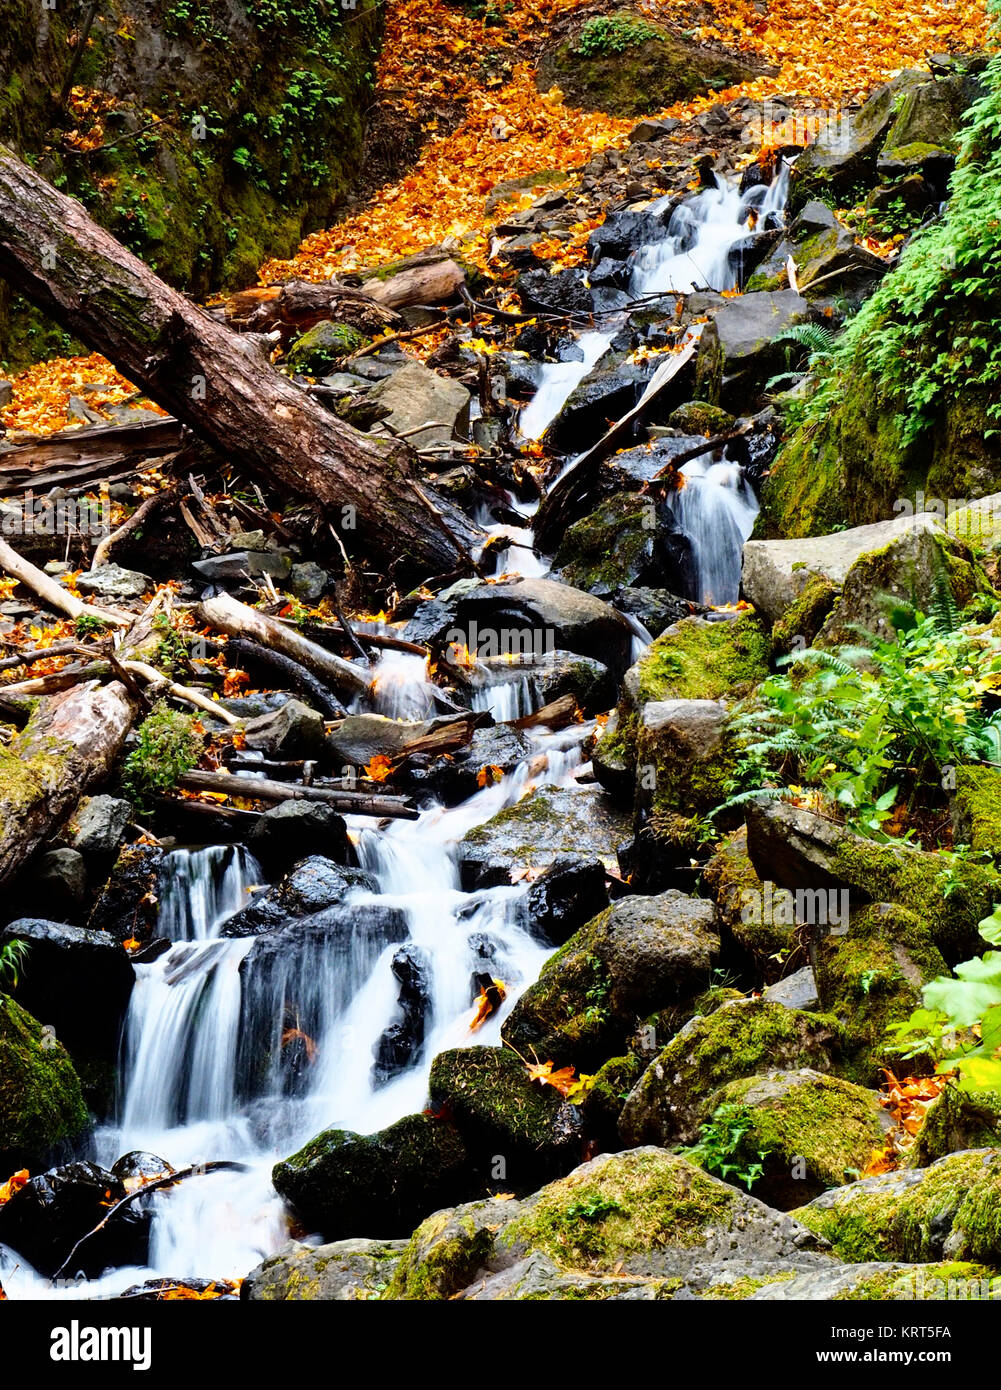 Waterfall at Starvation Creek State Park, Oregon, in autumn. - Stock Image